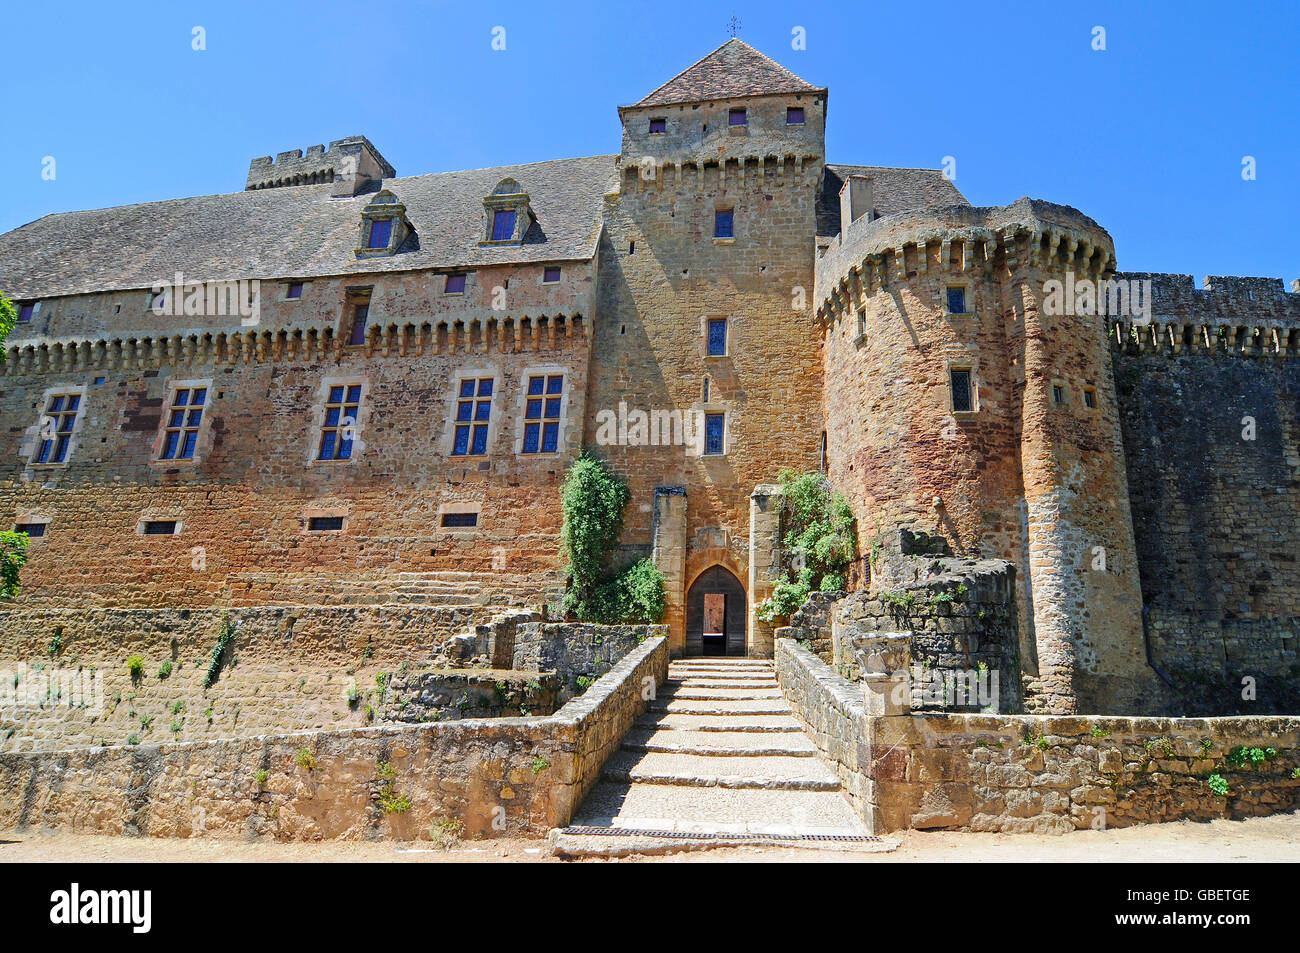 Chateau de Castelnau-Bretenoux, Museum, Prudhomat, Departement Lot, Midi-Pyrenees, France Stock Photo